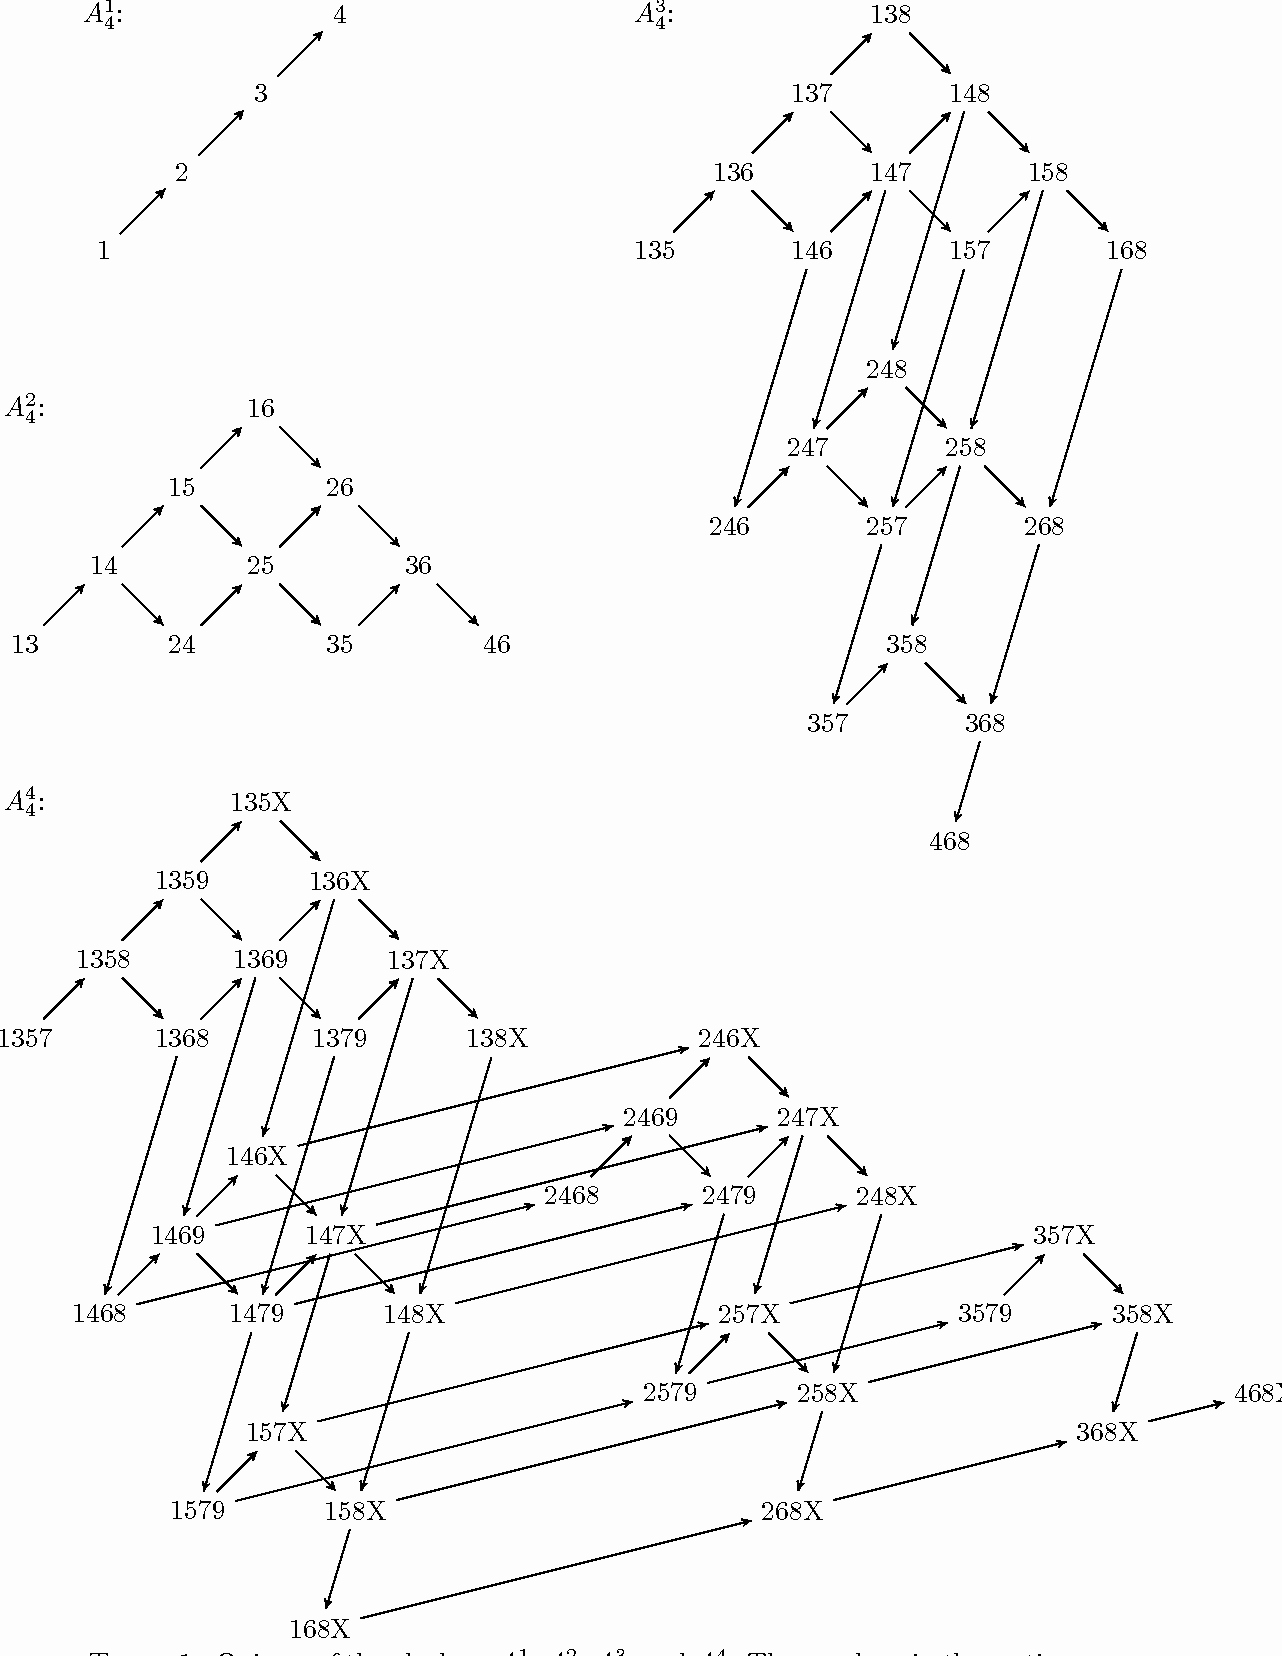 Piping Isometric Drawing Exercises Pdf at GetDrawings com